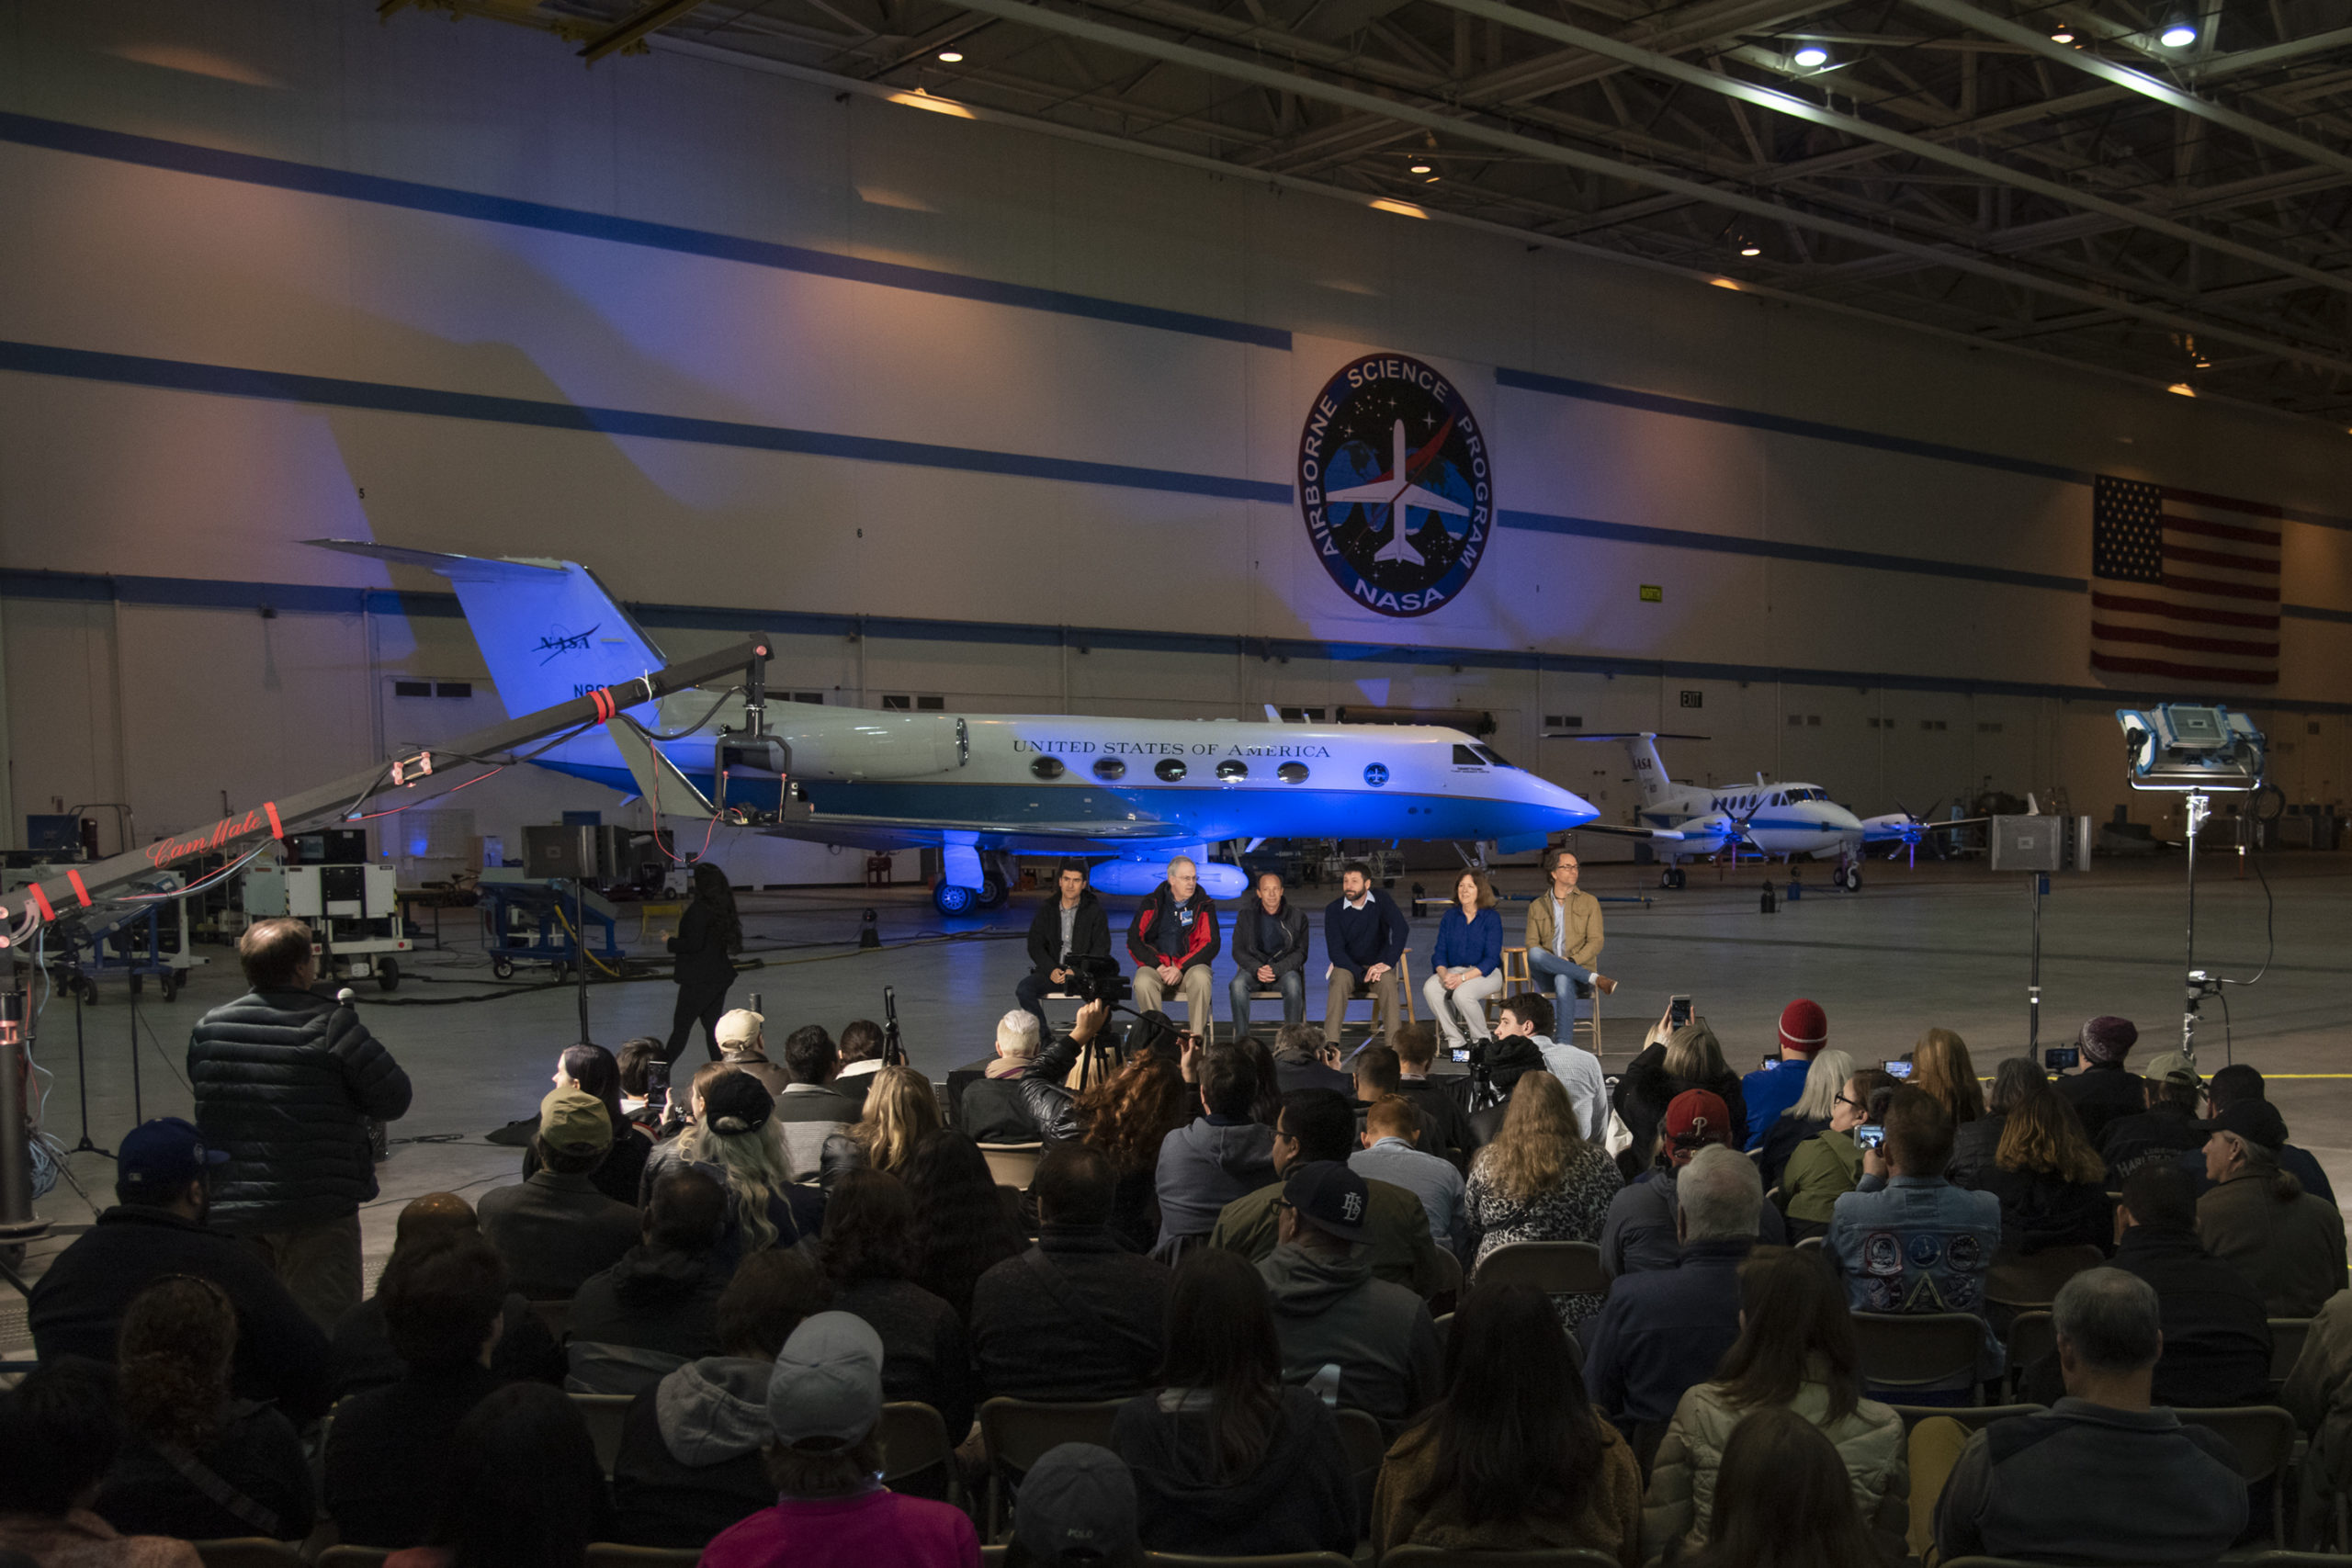 NASA's Armstrong Flight Research Center hosted a NASA Social at BLDG 703 in Palmdale, California. Over 90 attendees toured the aircraft inside the hangar as they learned about the five airborne science expeditions targeting air, land, and sea.